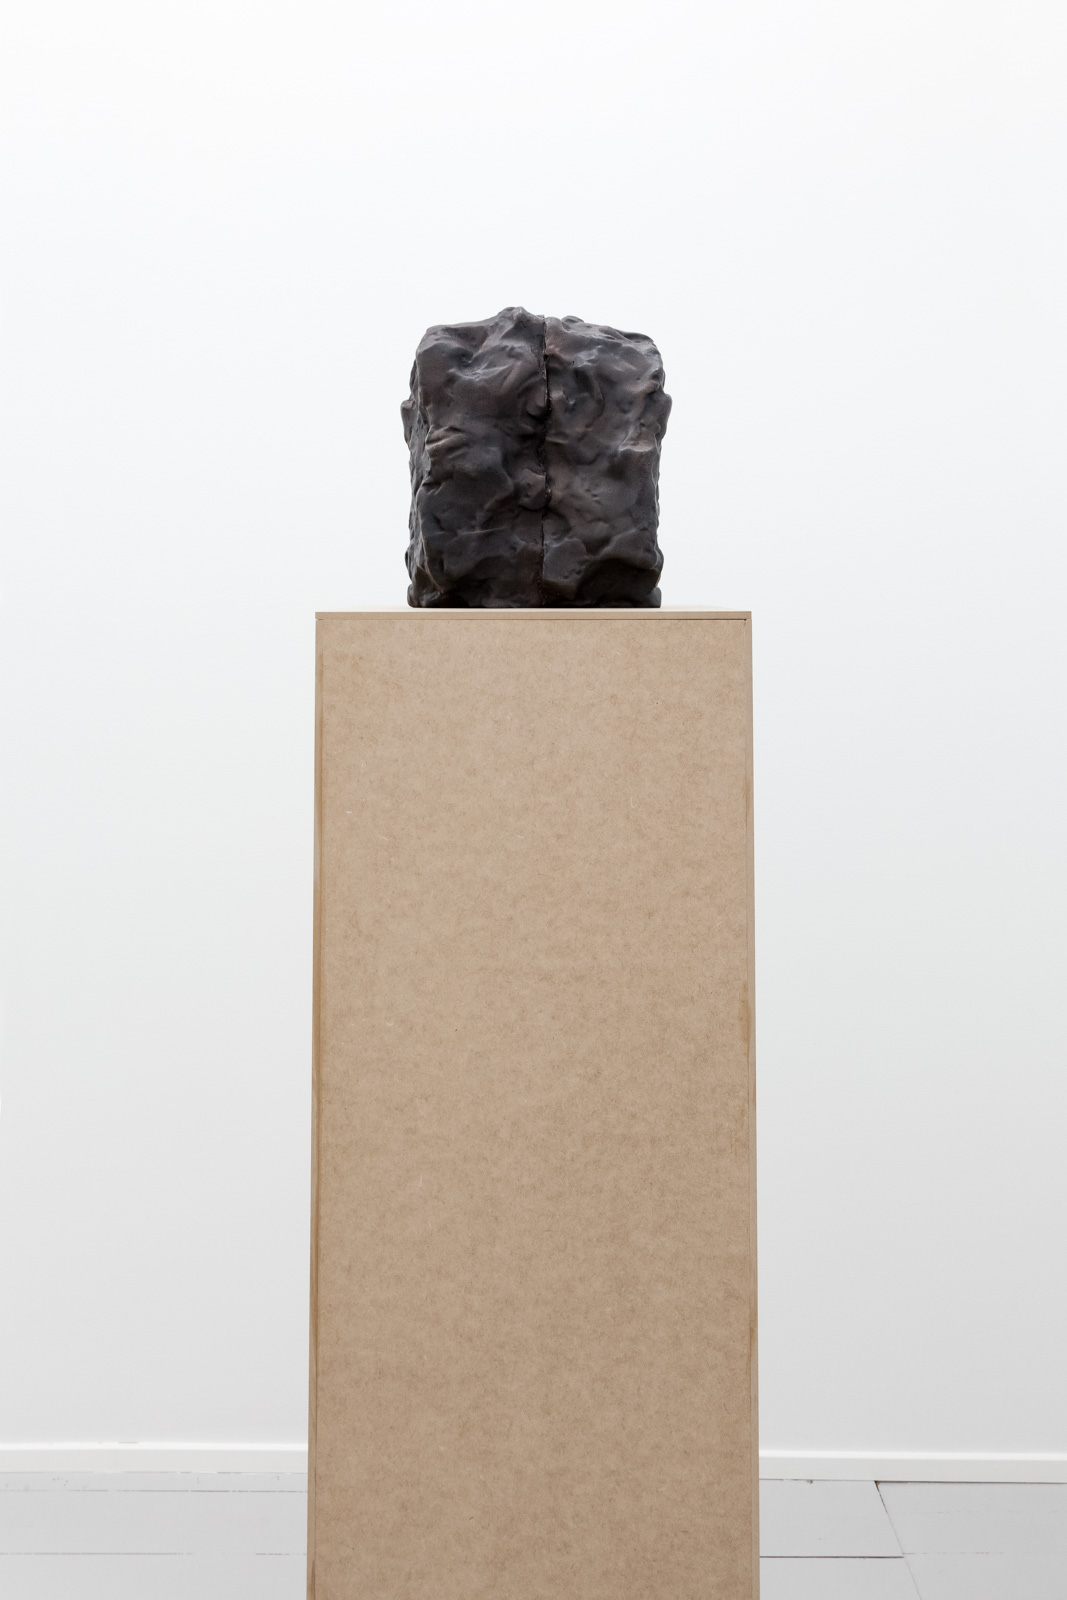 Dobbel I, 2017, Patinated bronze, 26 x 15 x 22,5 cm